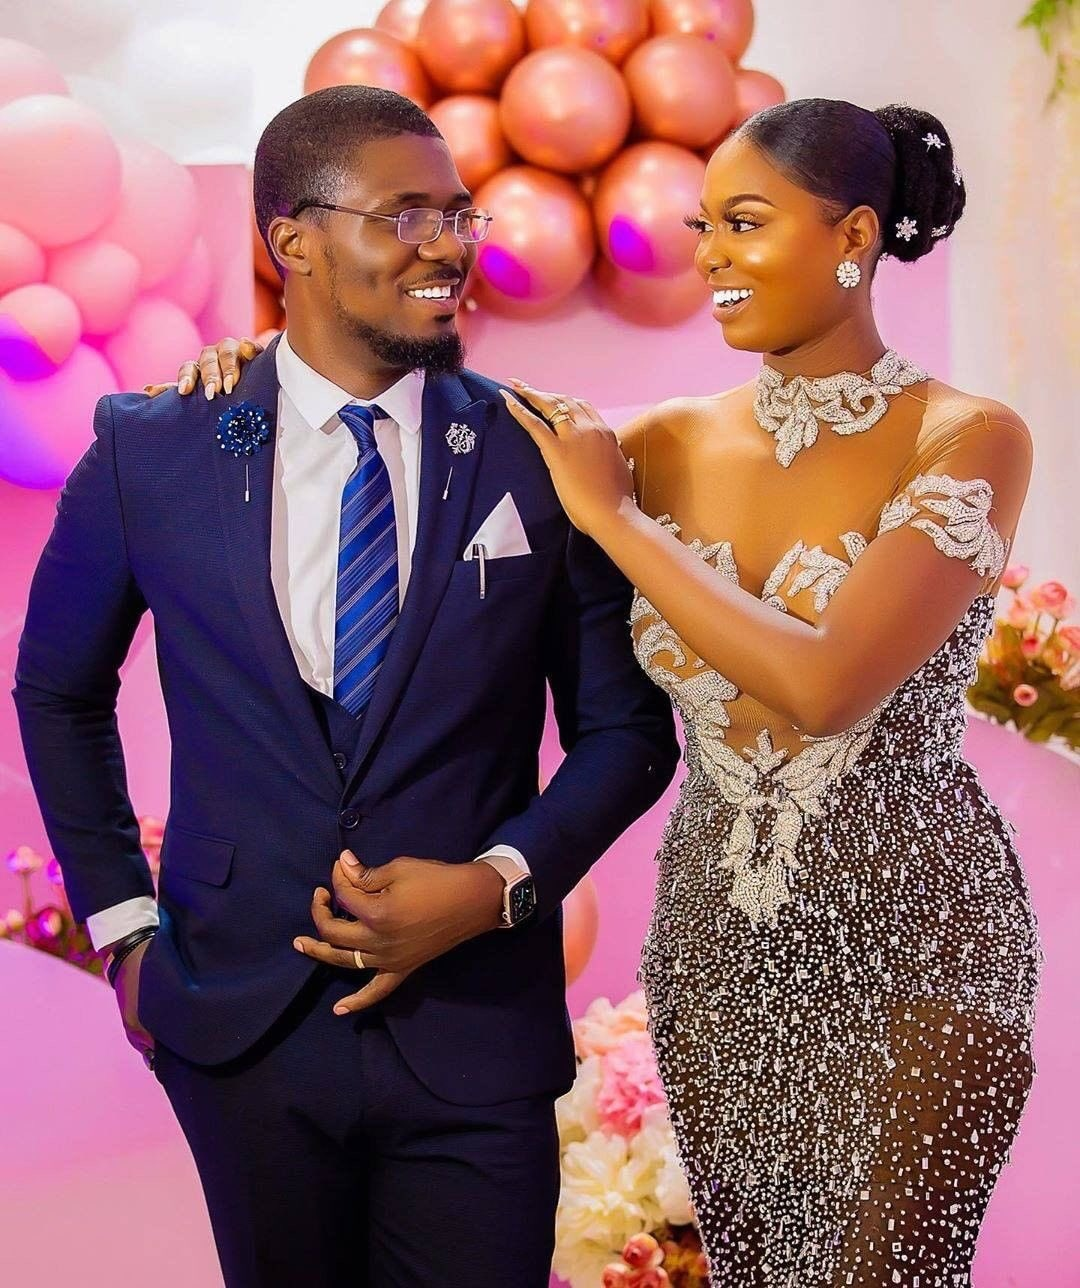 Nigerian man charmed his better half